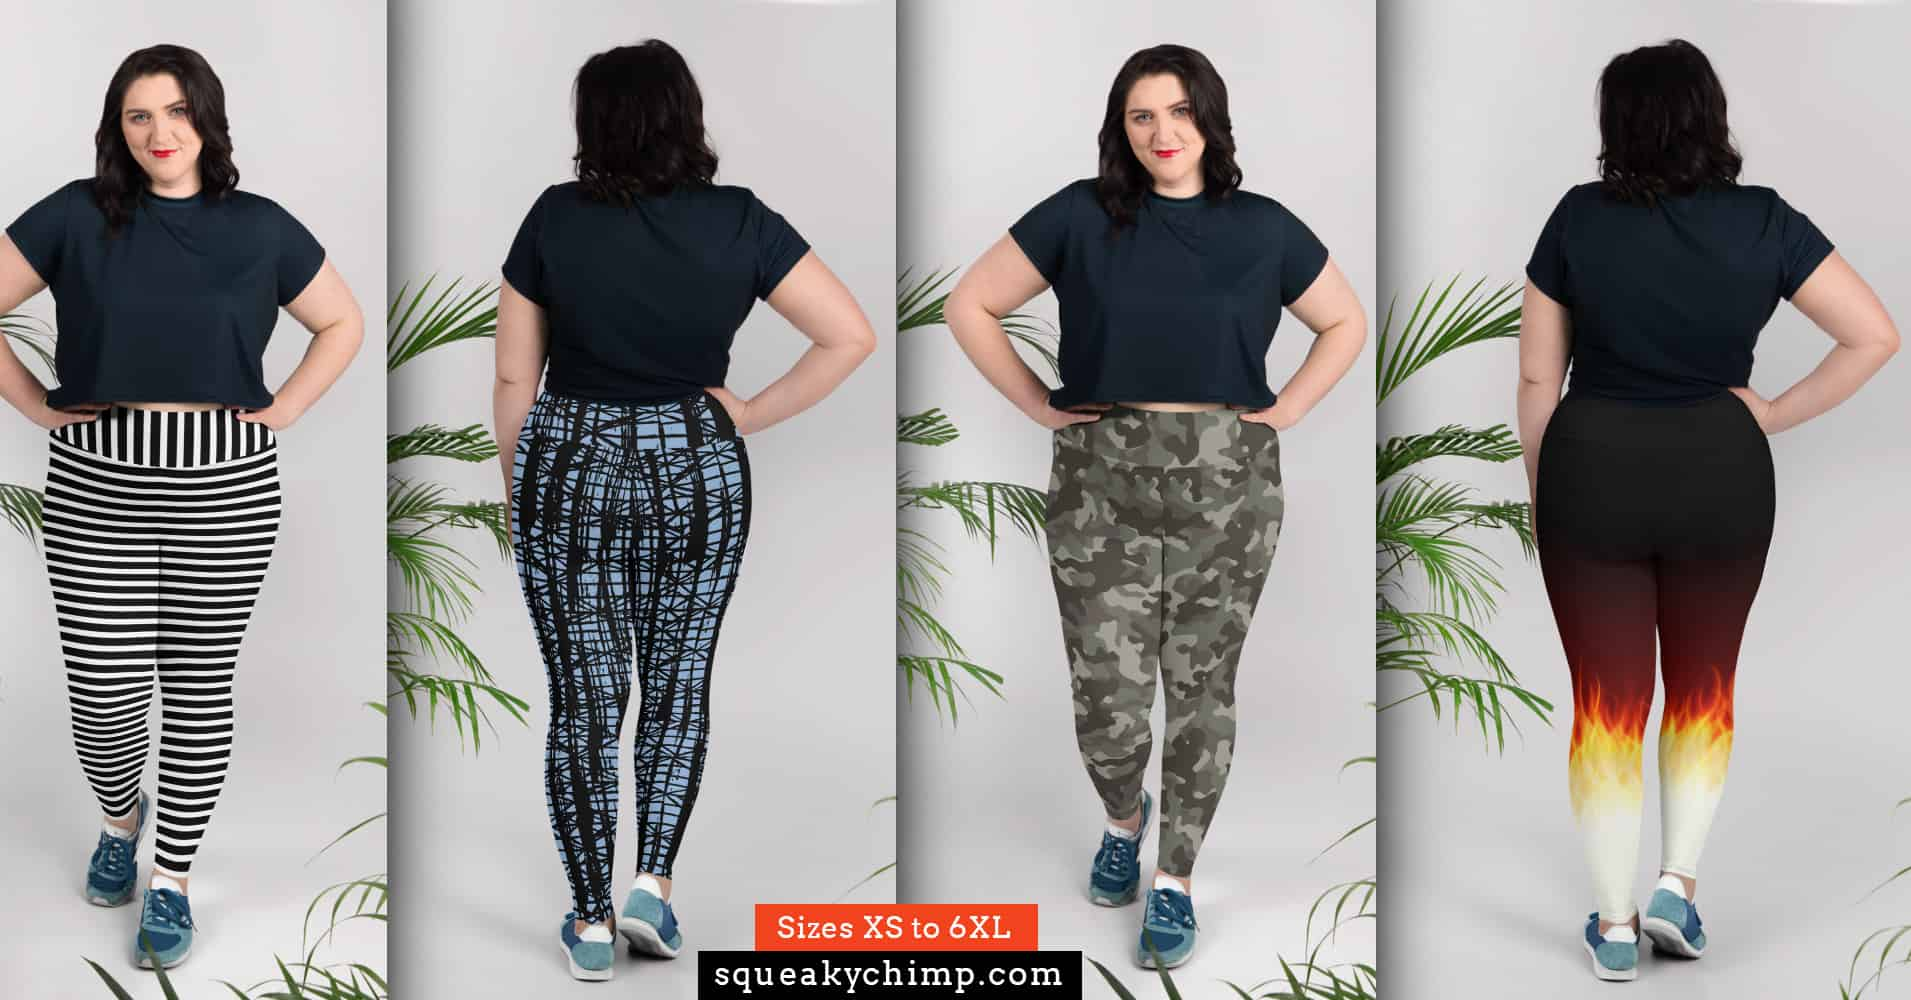 644505dc9e3b8d Plus Size Leggings - Page 2 of 10 - Squeaky Chimp Tshirts & Leggings